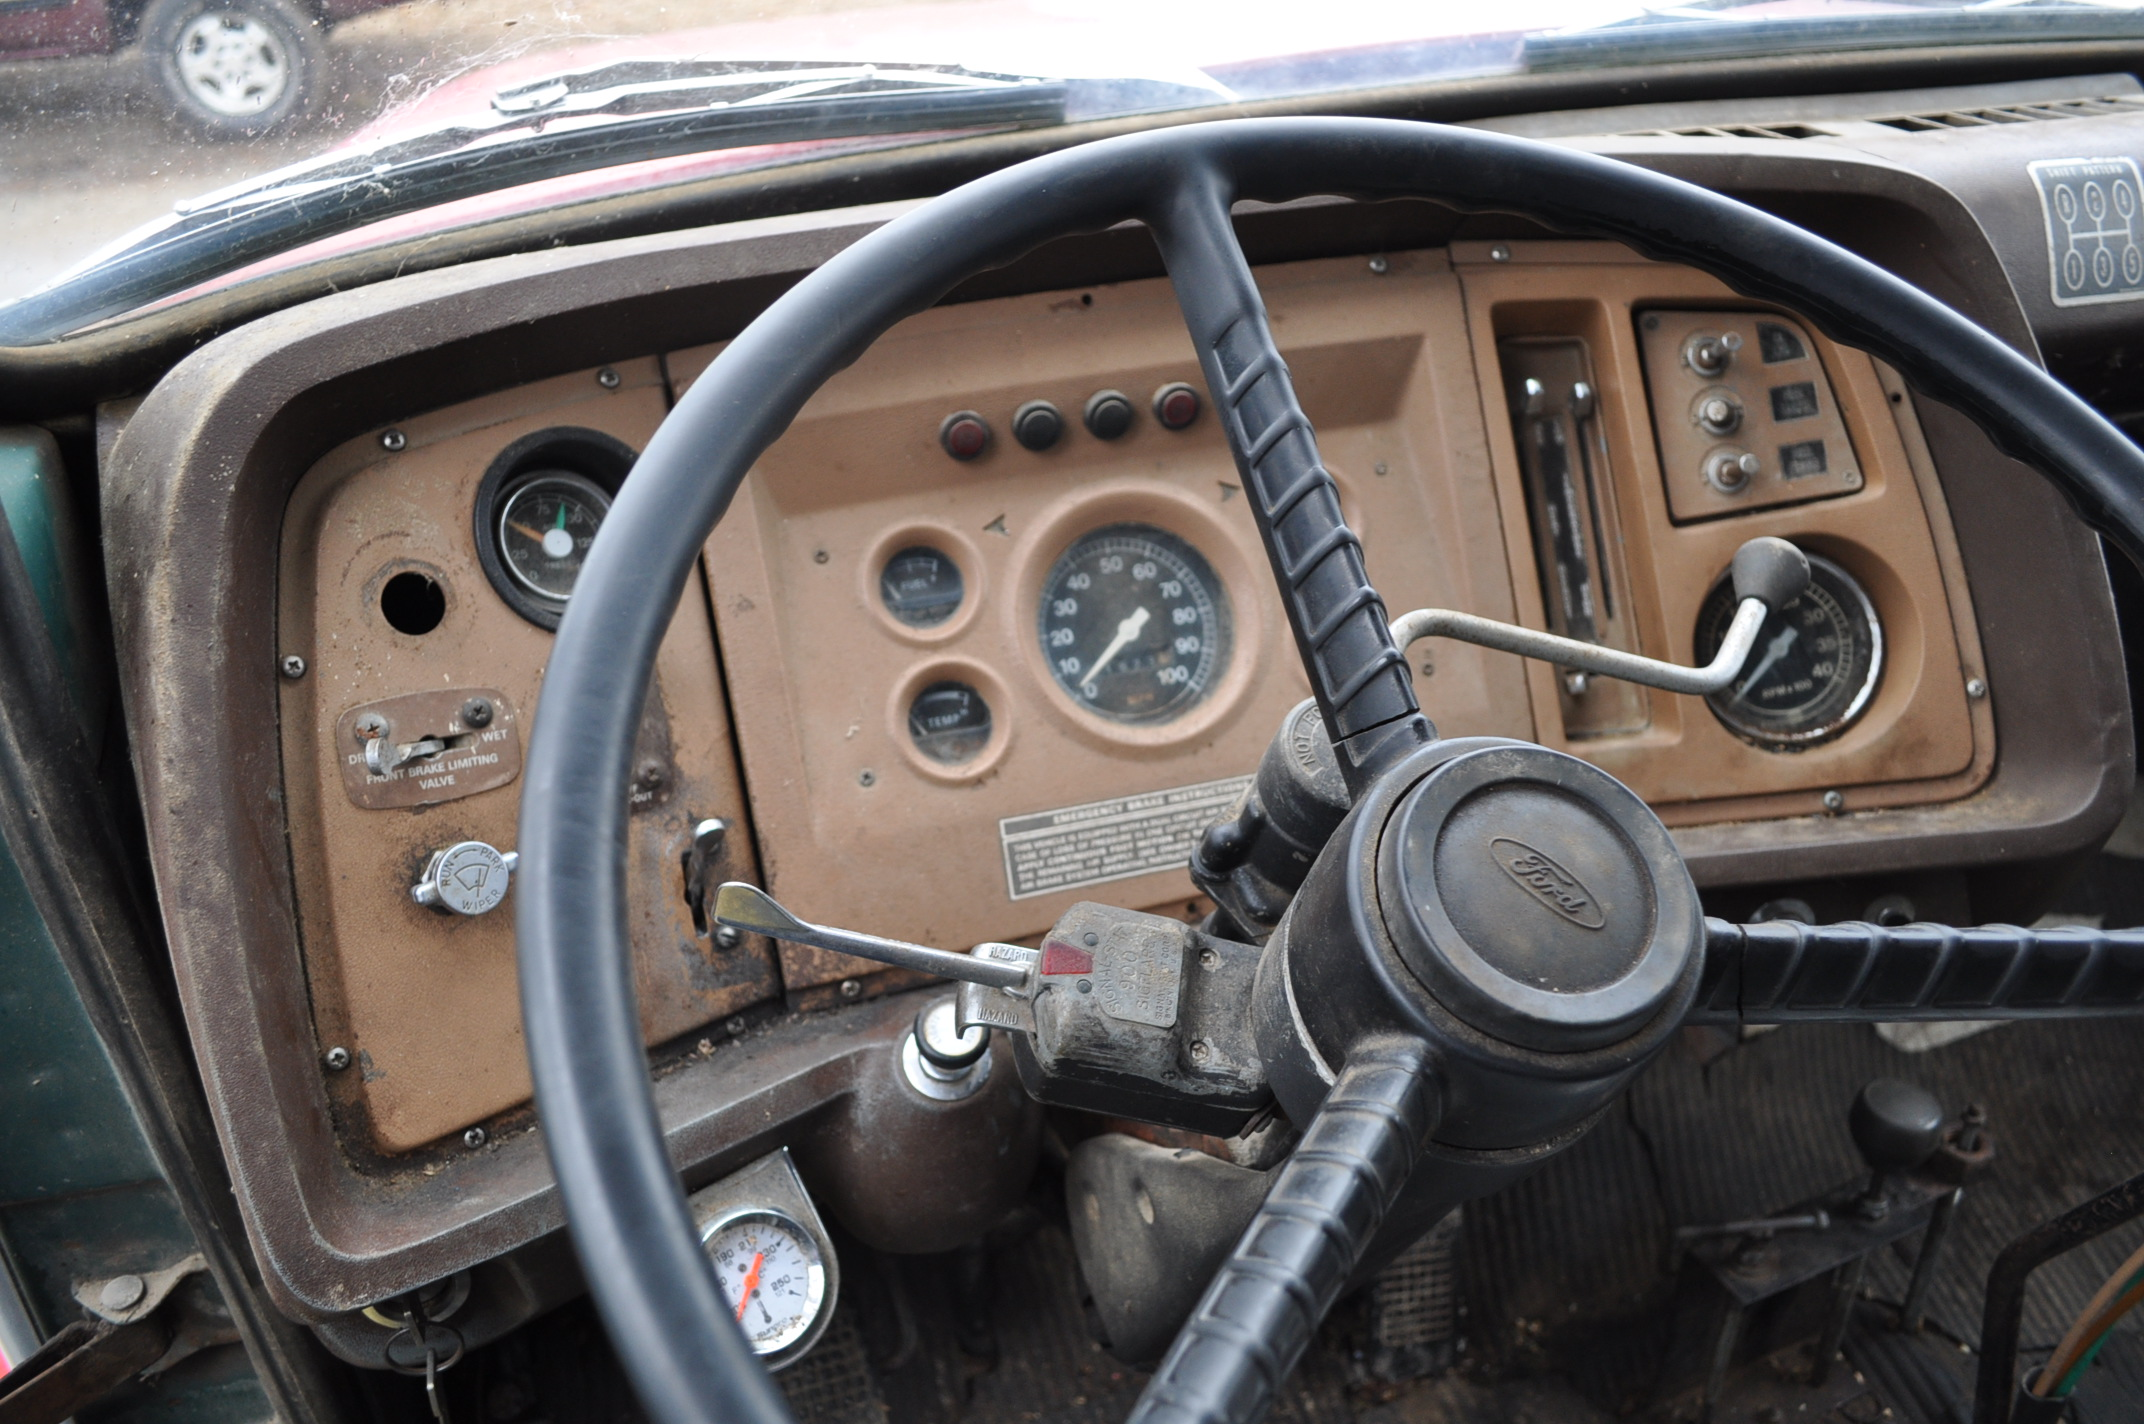 1974 Ford 900 grain truck, tandem axle, gas V-8, 5 + 2, 10.00-20 tires, 18' wood floor, pto, - Image 18 of 26